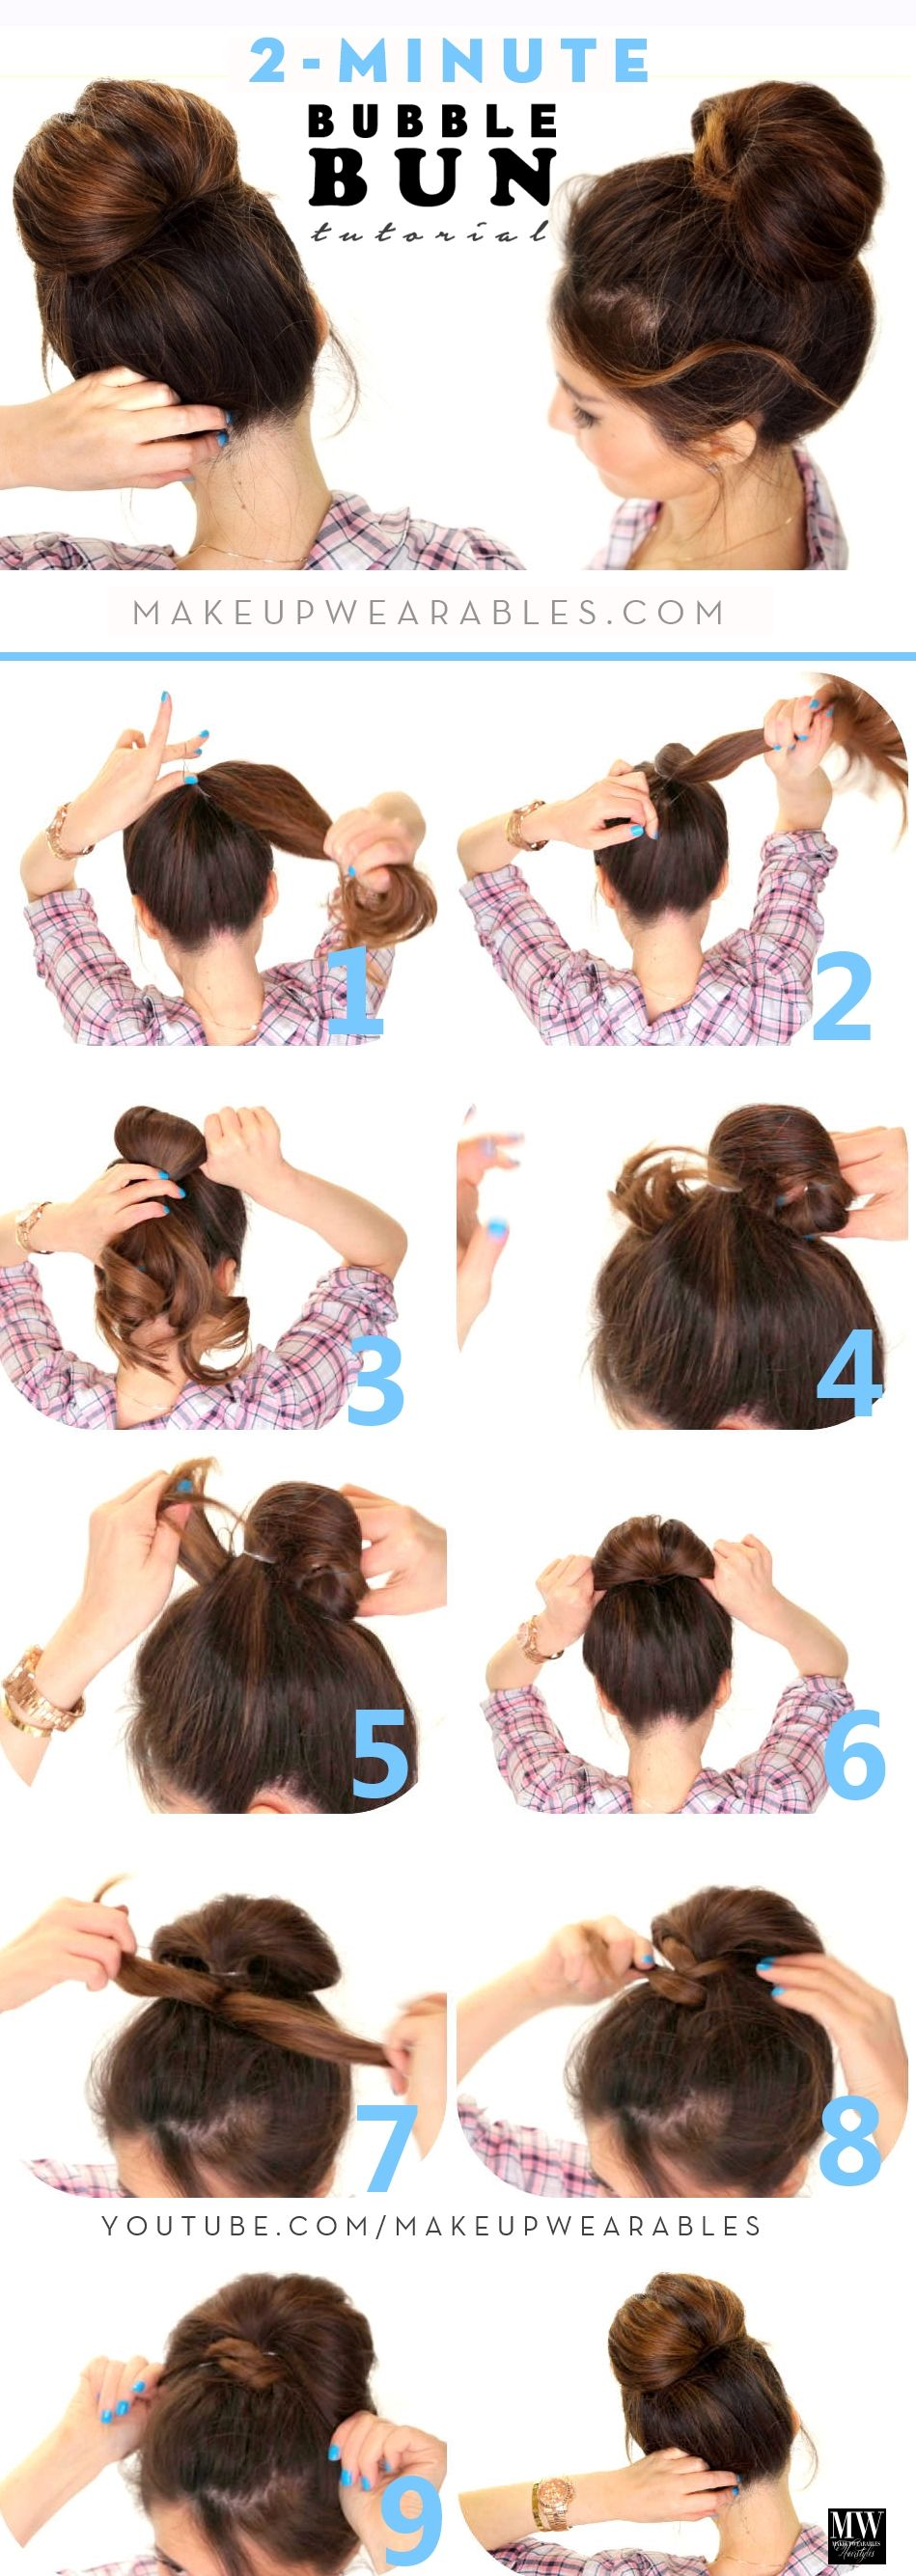 Easy 2 Minute Hairstyles For Long Hair Hairstyles Hairstylesforlonghair Minute Hair Styles Long Hair Styles Hair Bun Tutorial